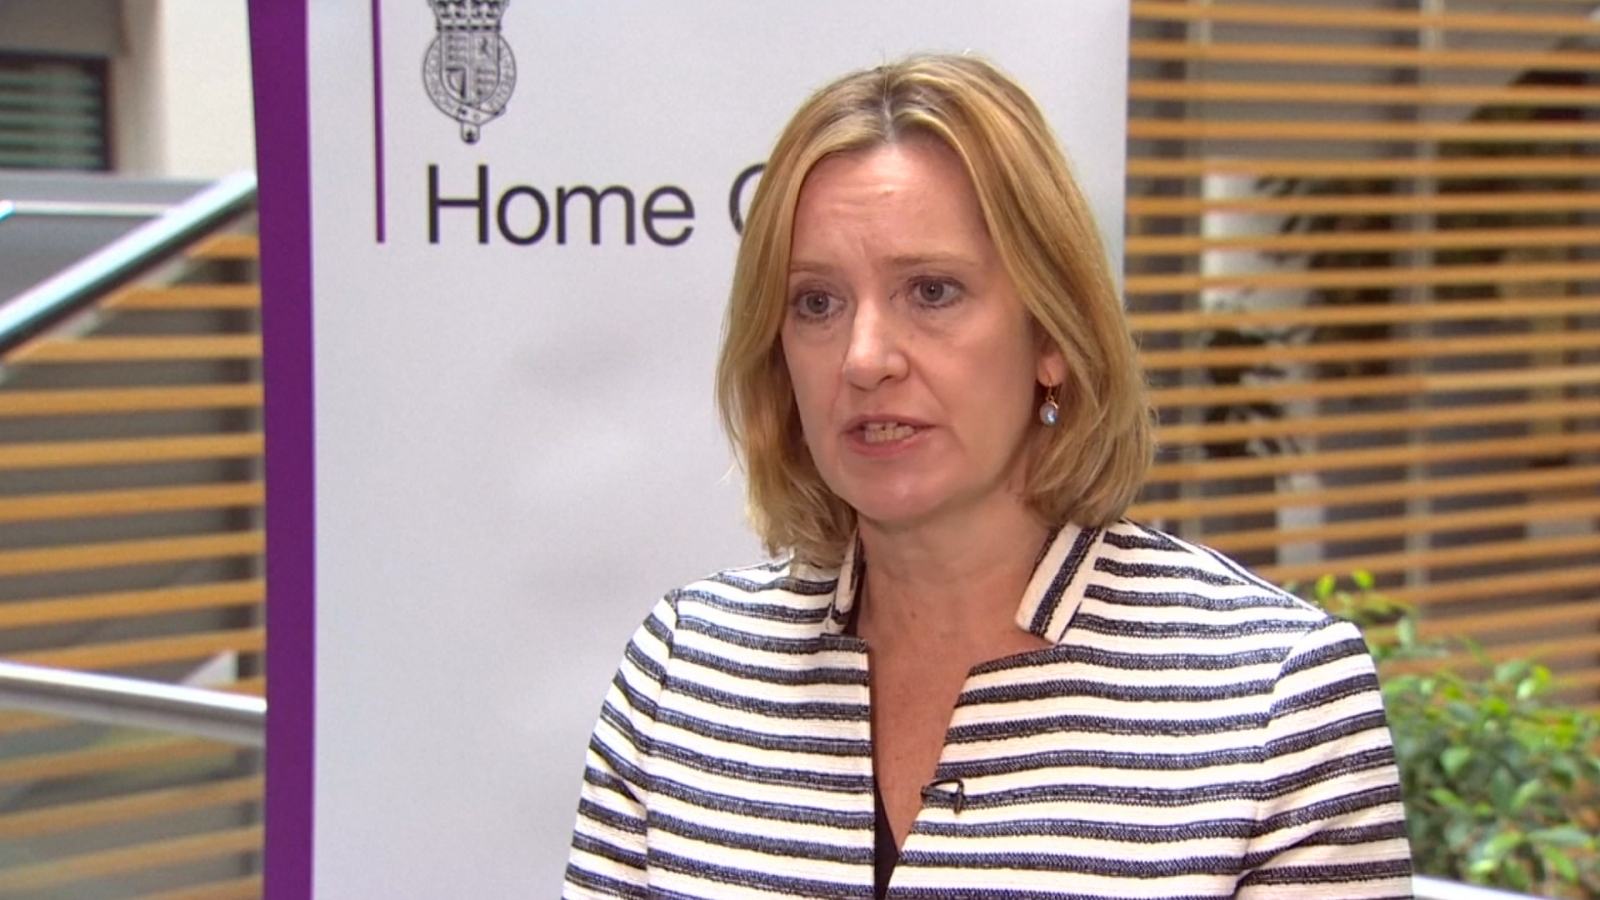 parsons-green-attack-dover-arrest-very-significant-amber-rudd-says